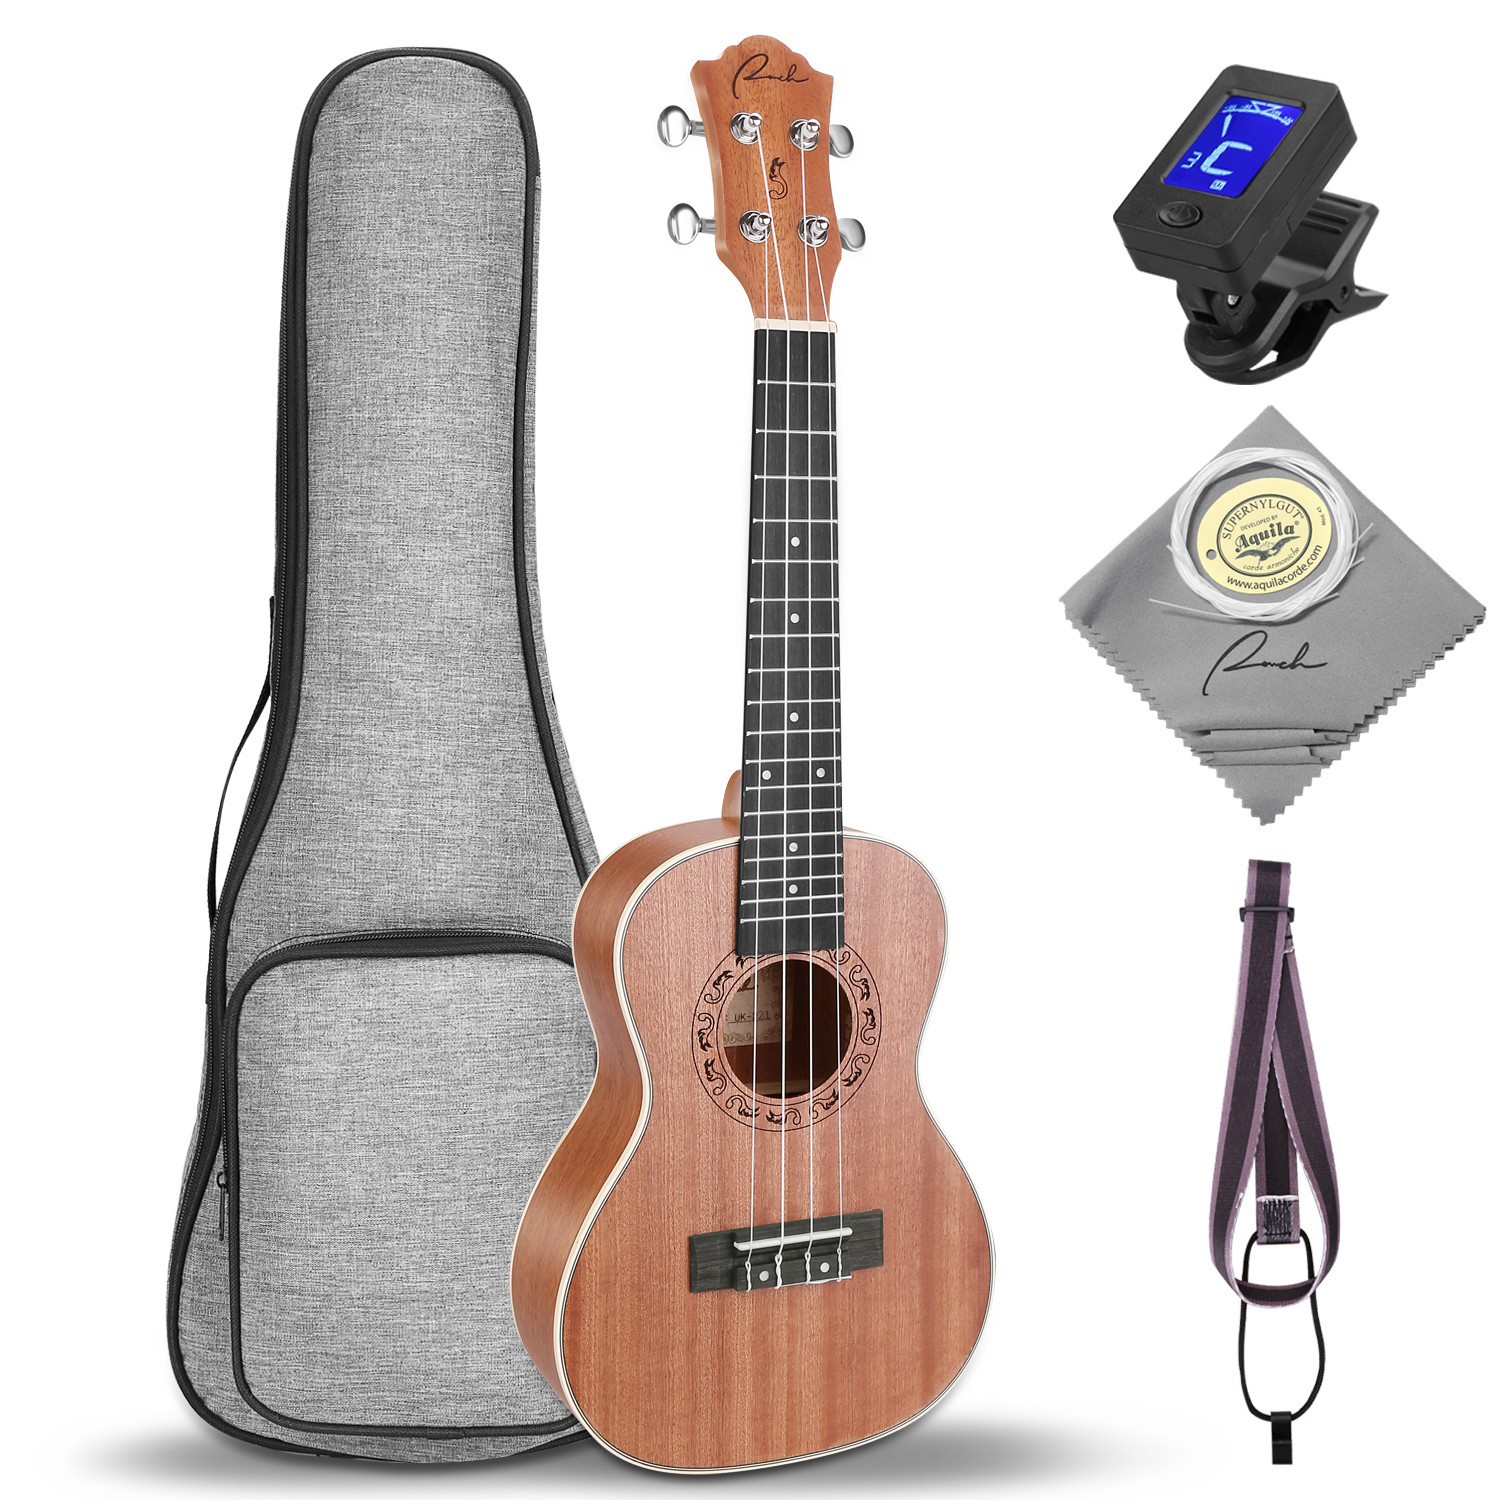 Ranch Guitar Ukulele With Music Instrument Accessories